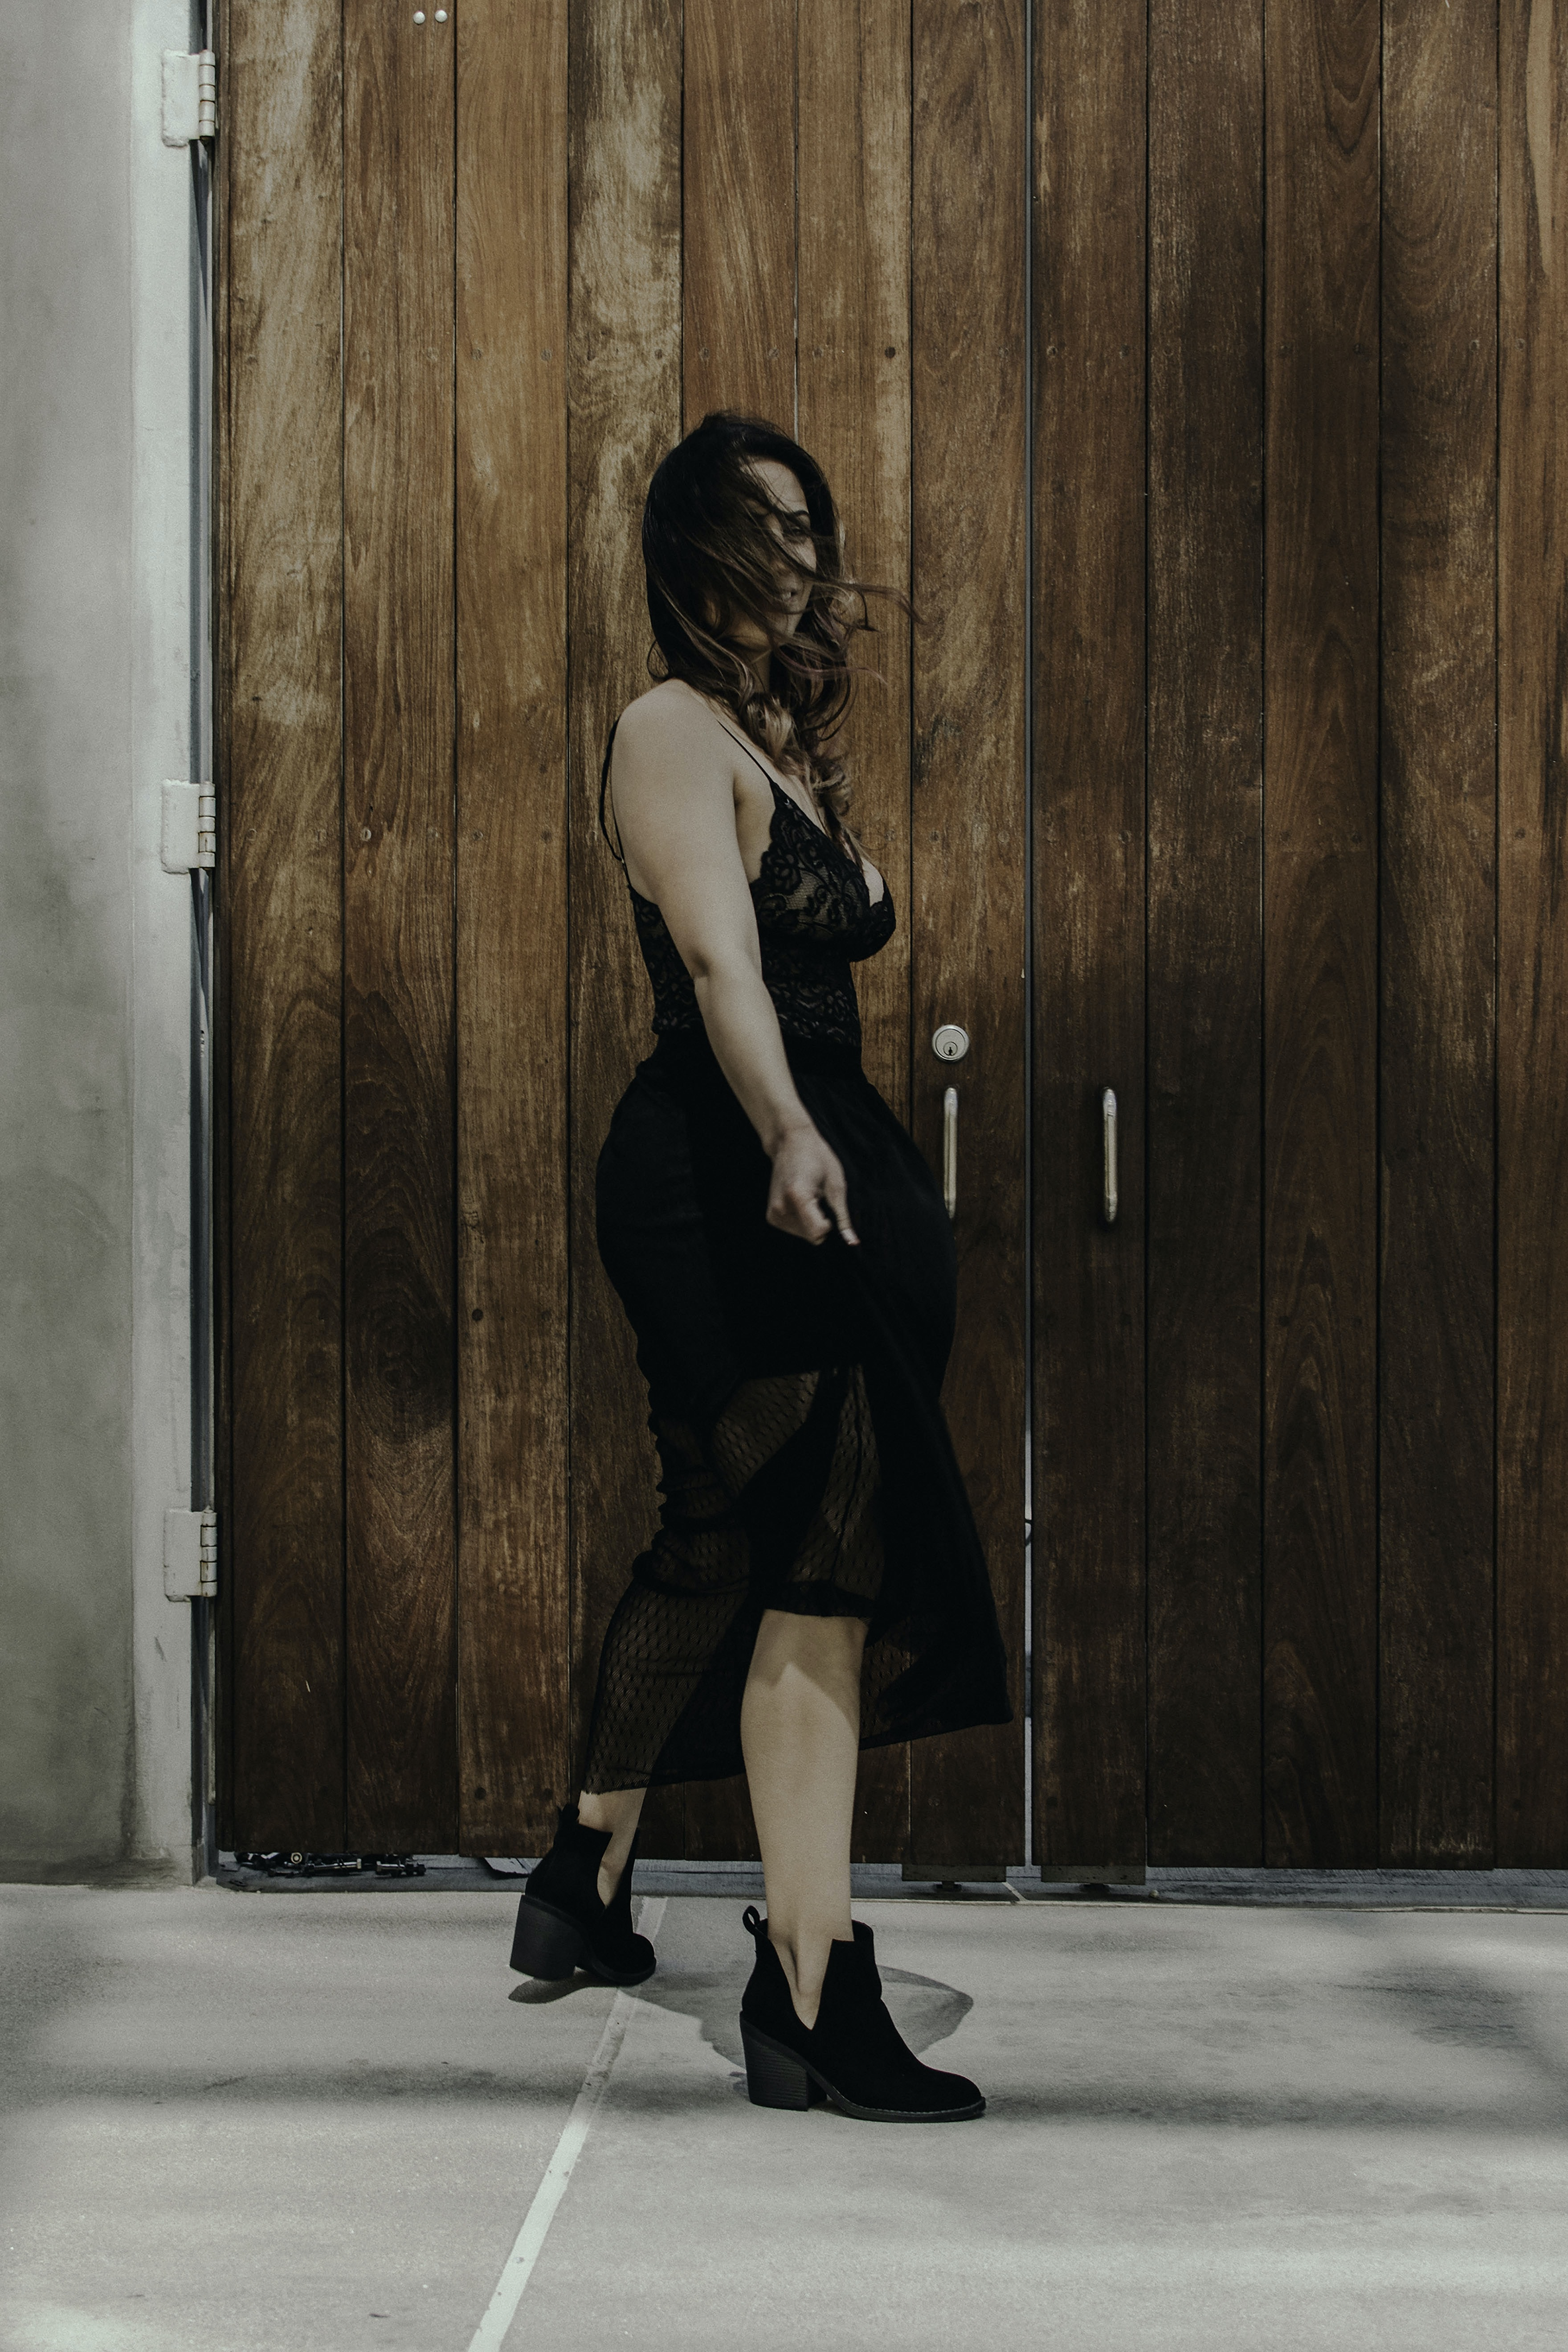 woman wearing black see-through dress